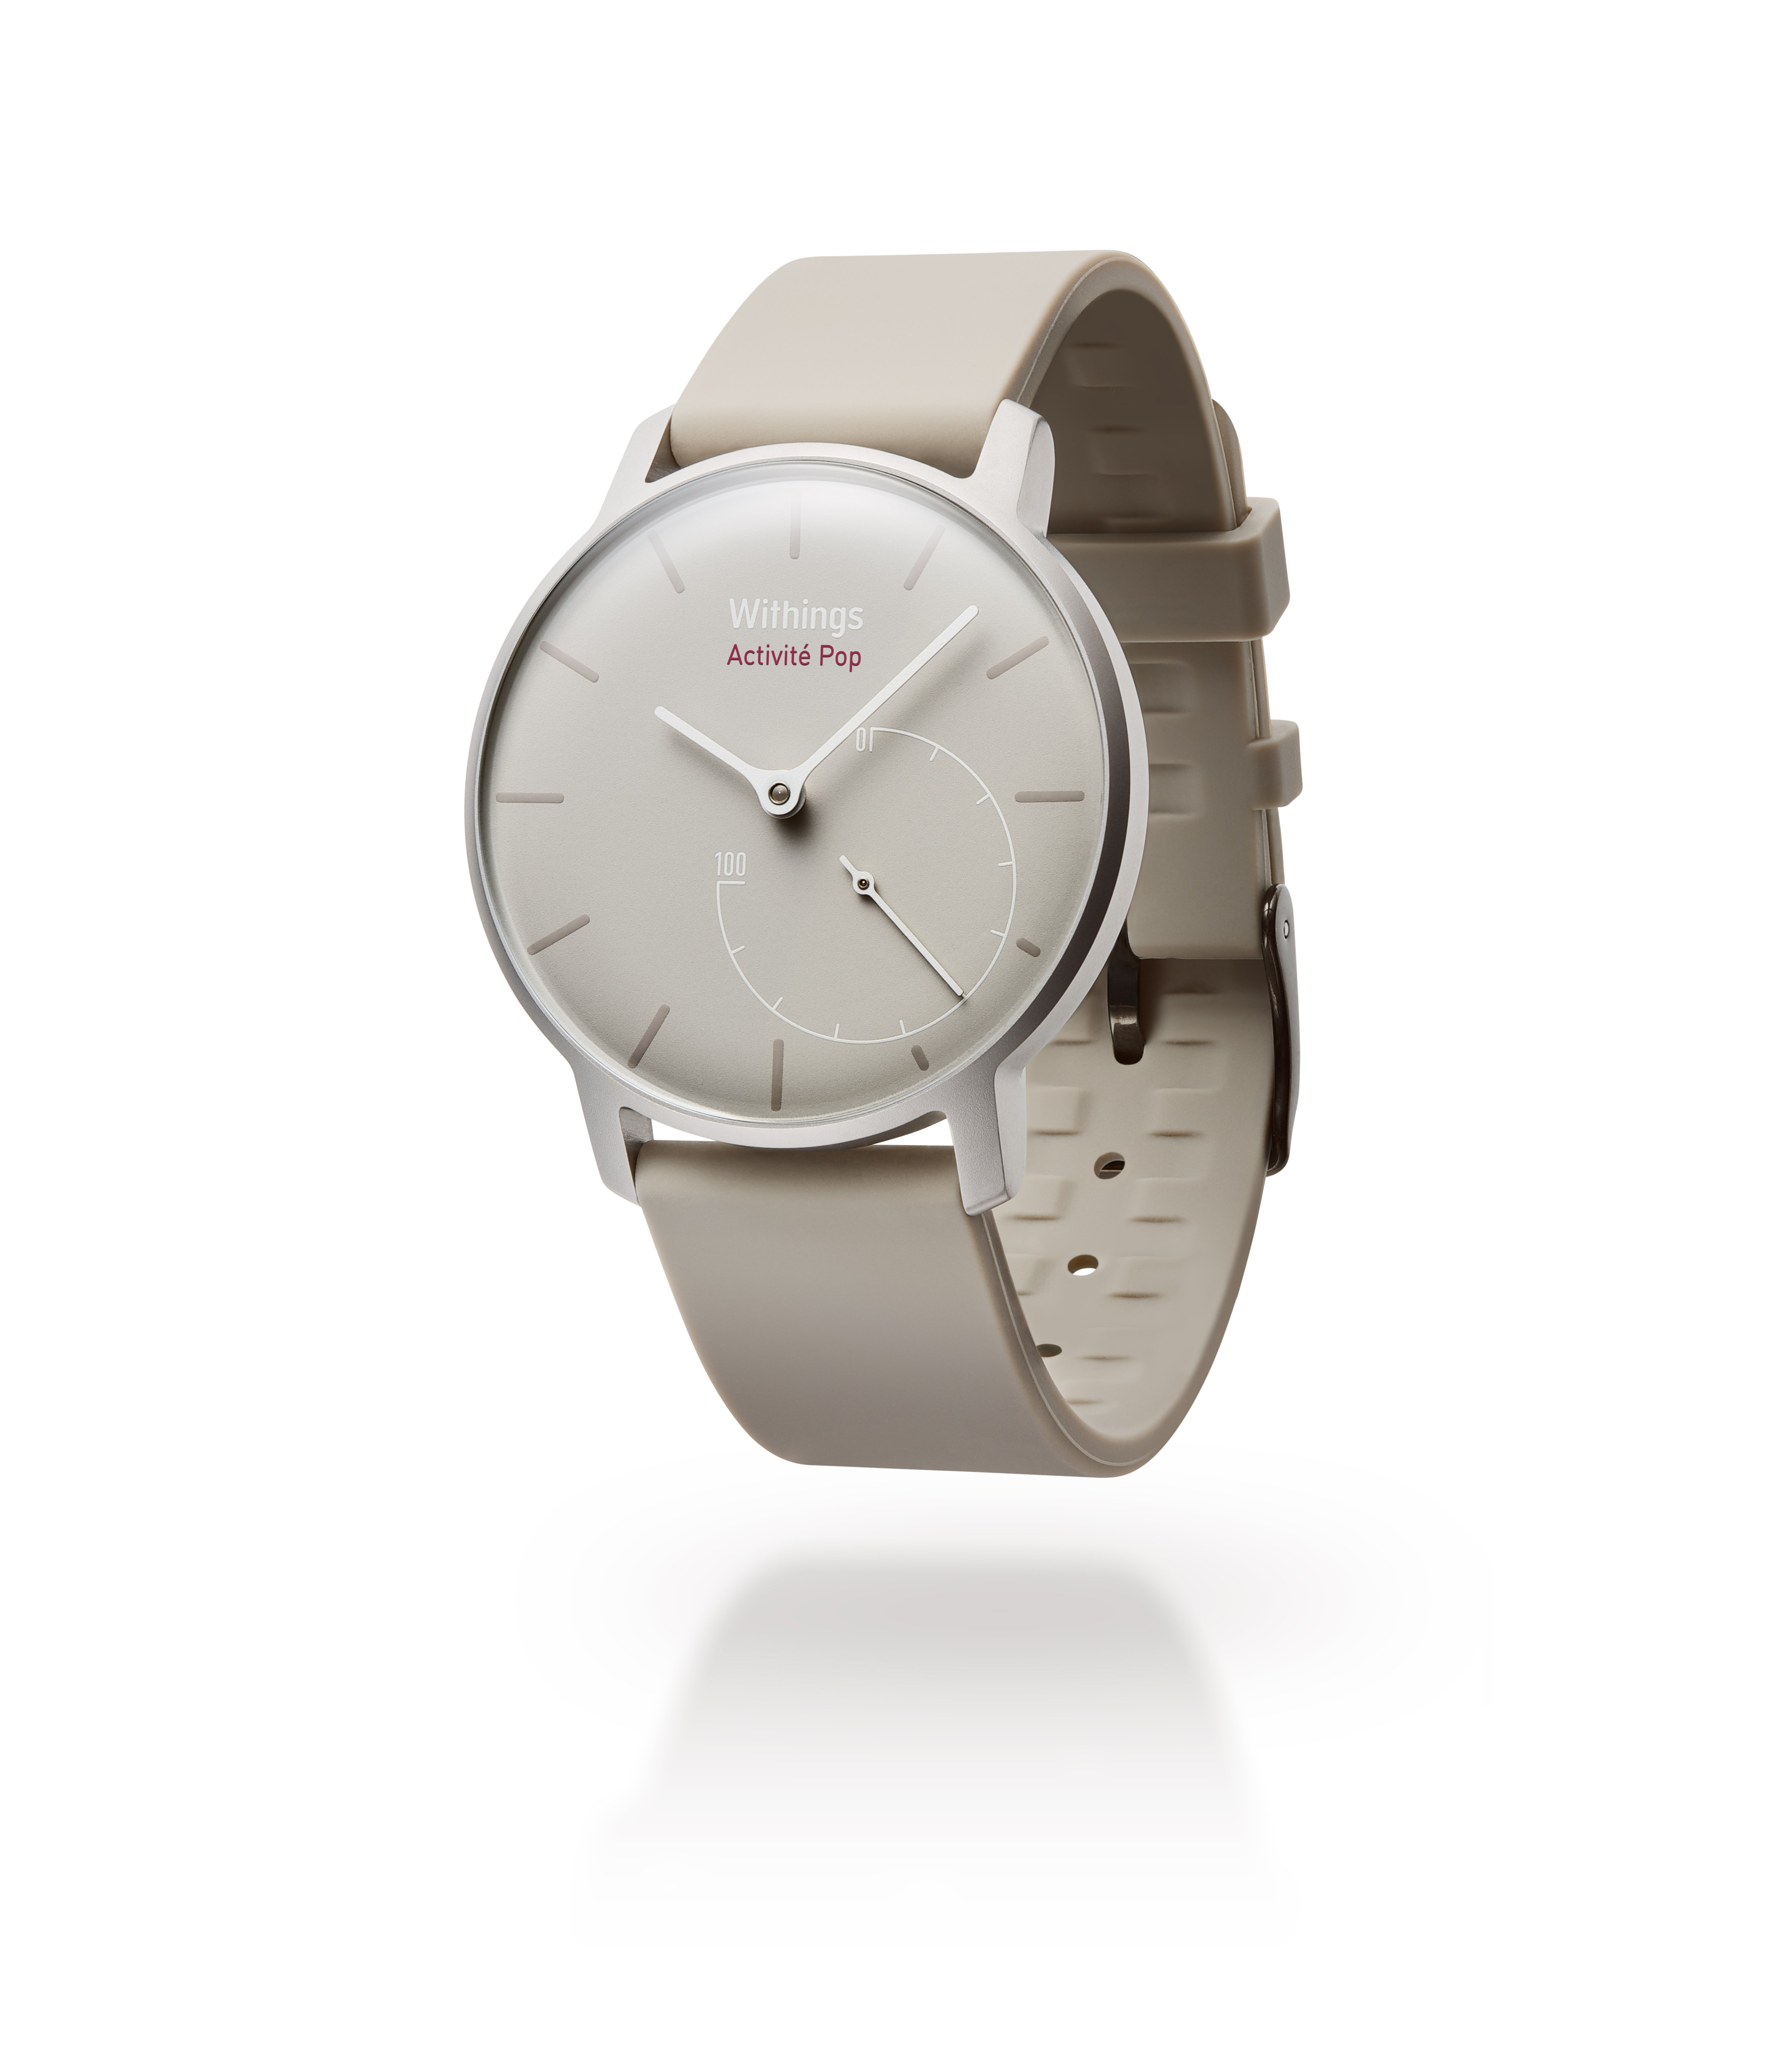 Withings Withings - Activite Pop Activity Tracker - Sand